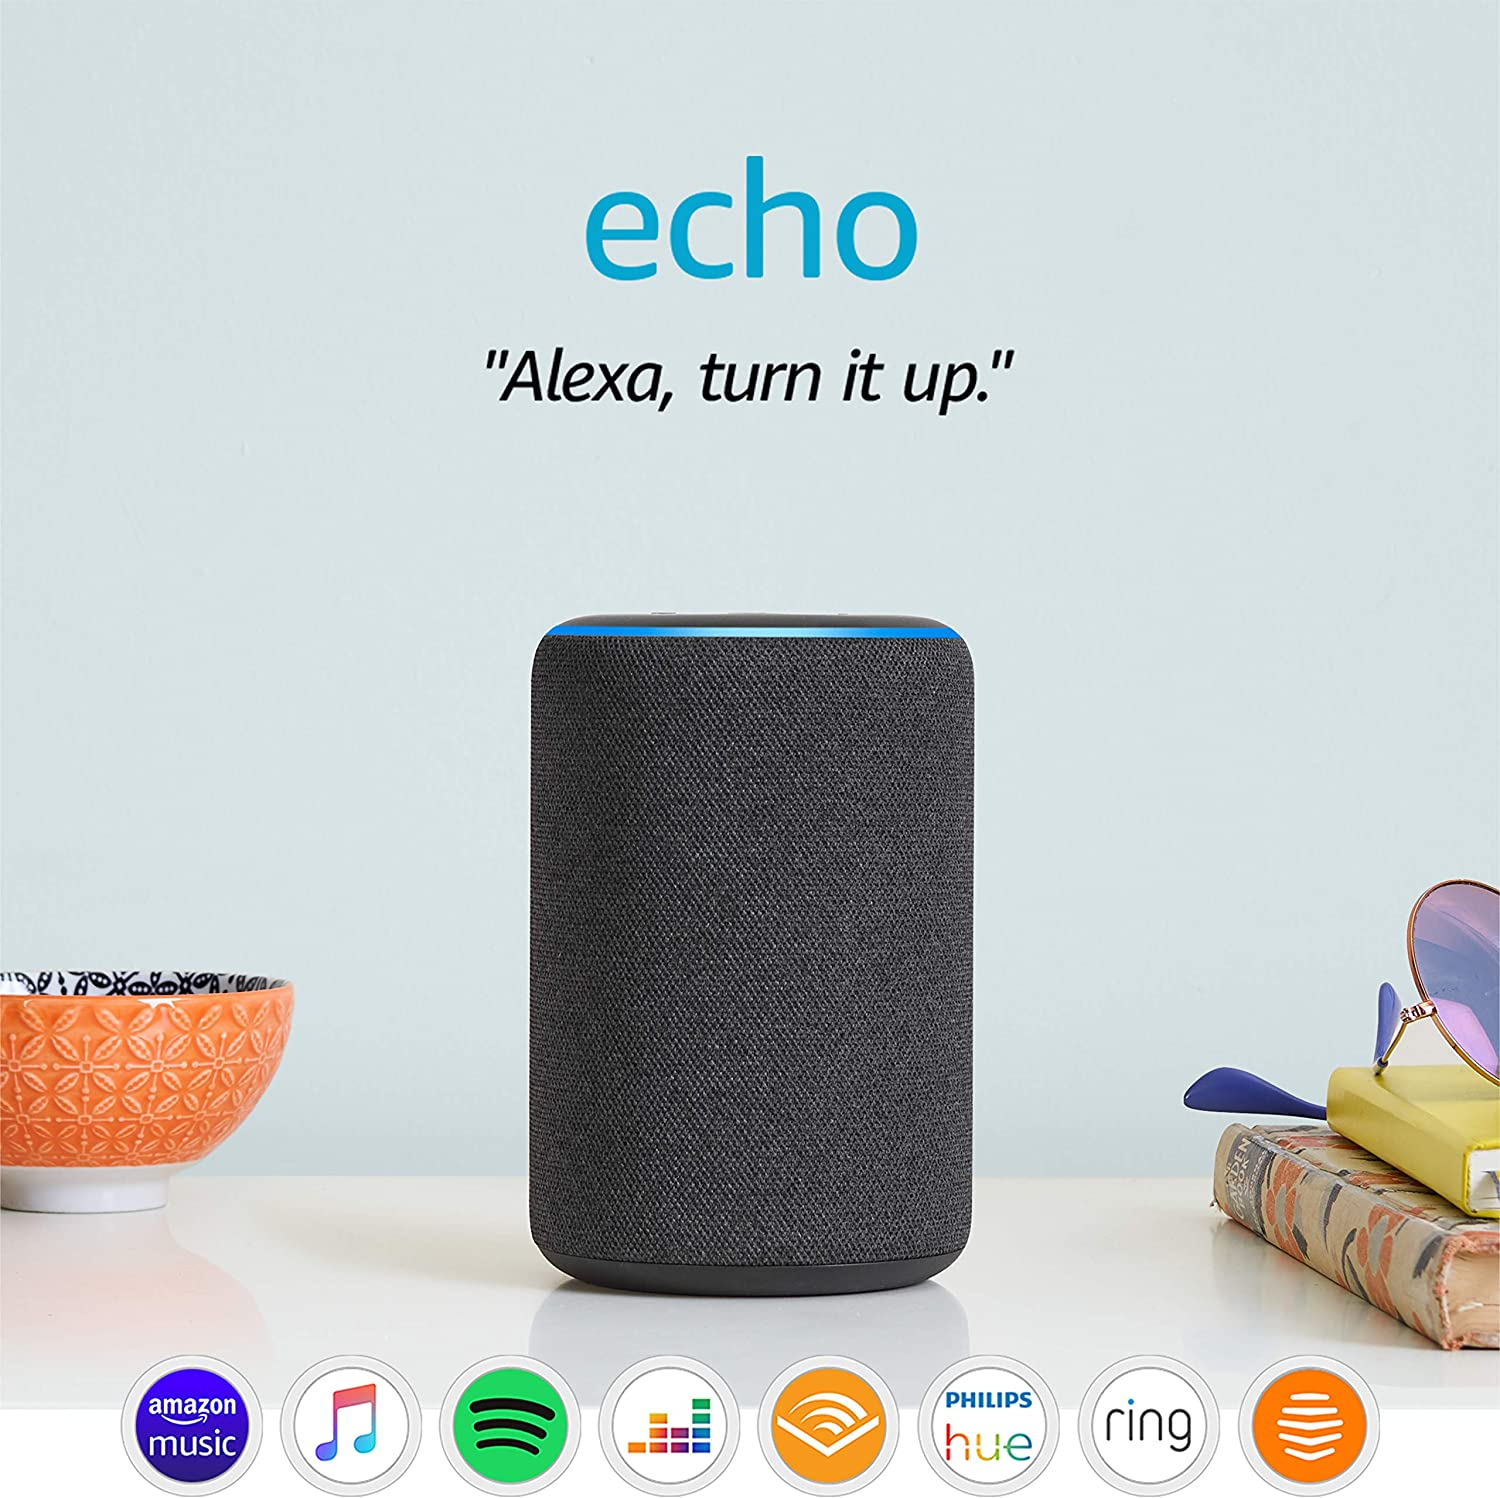 change speaker to other amazon devicde